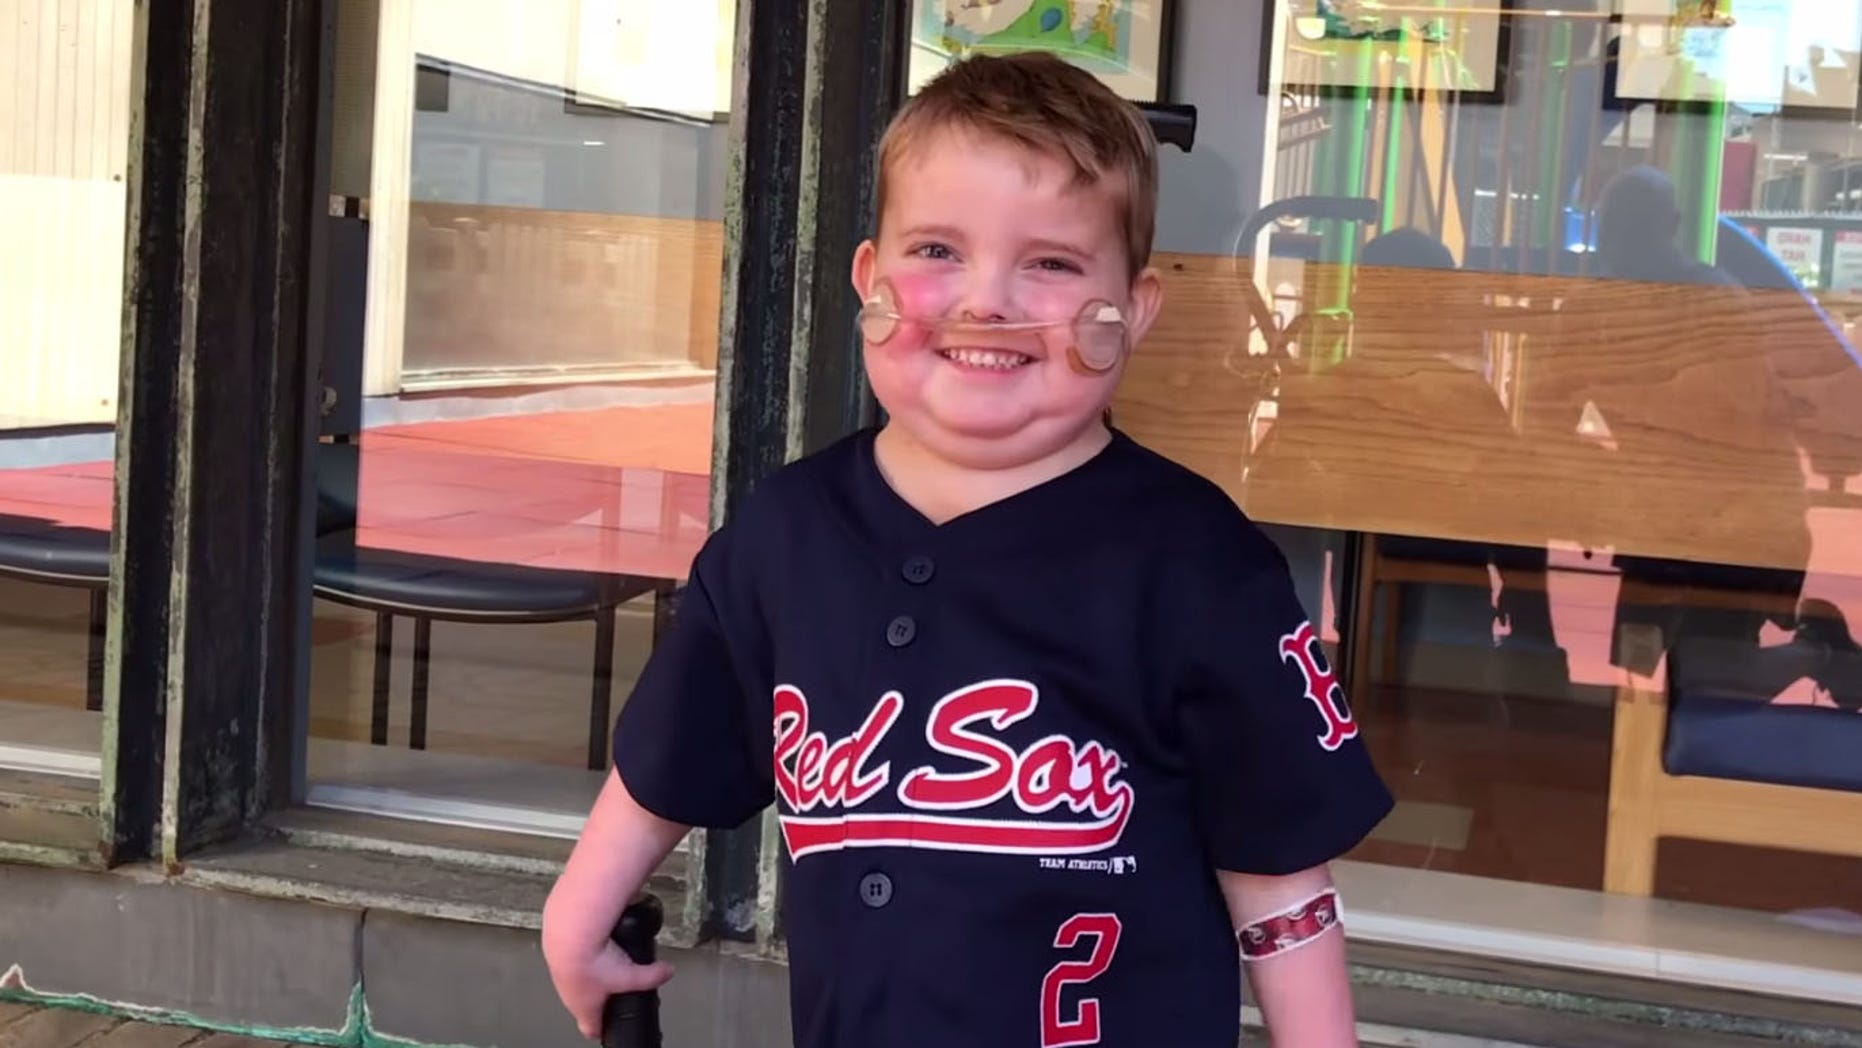 Ari Schultz was released on June 16 after spending 189 days in the hospital.